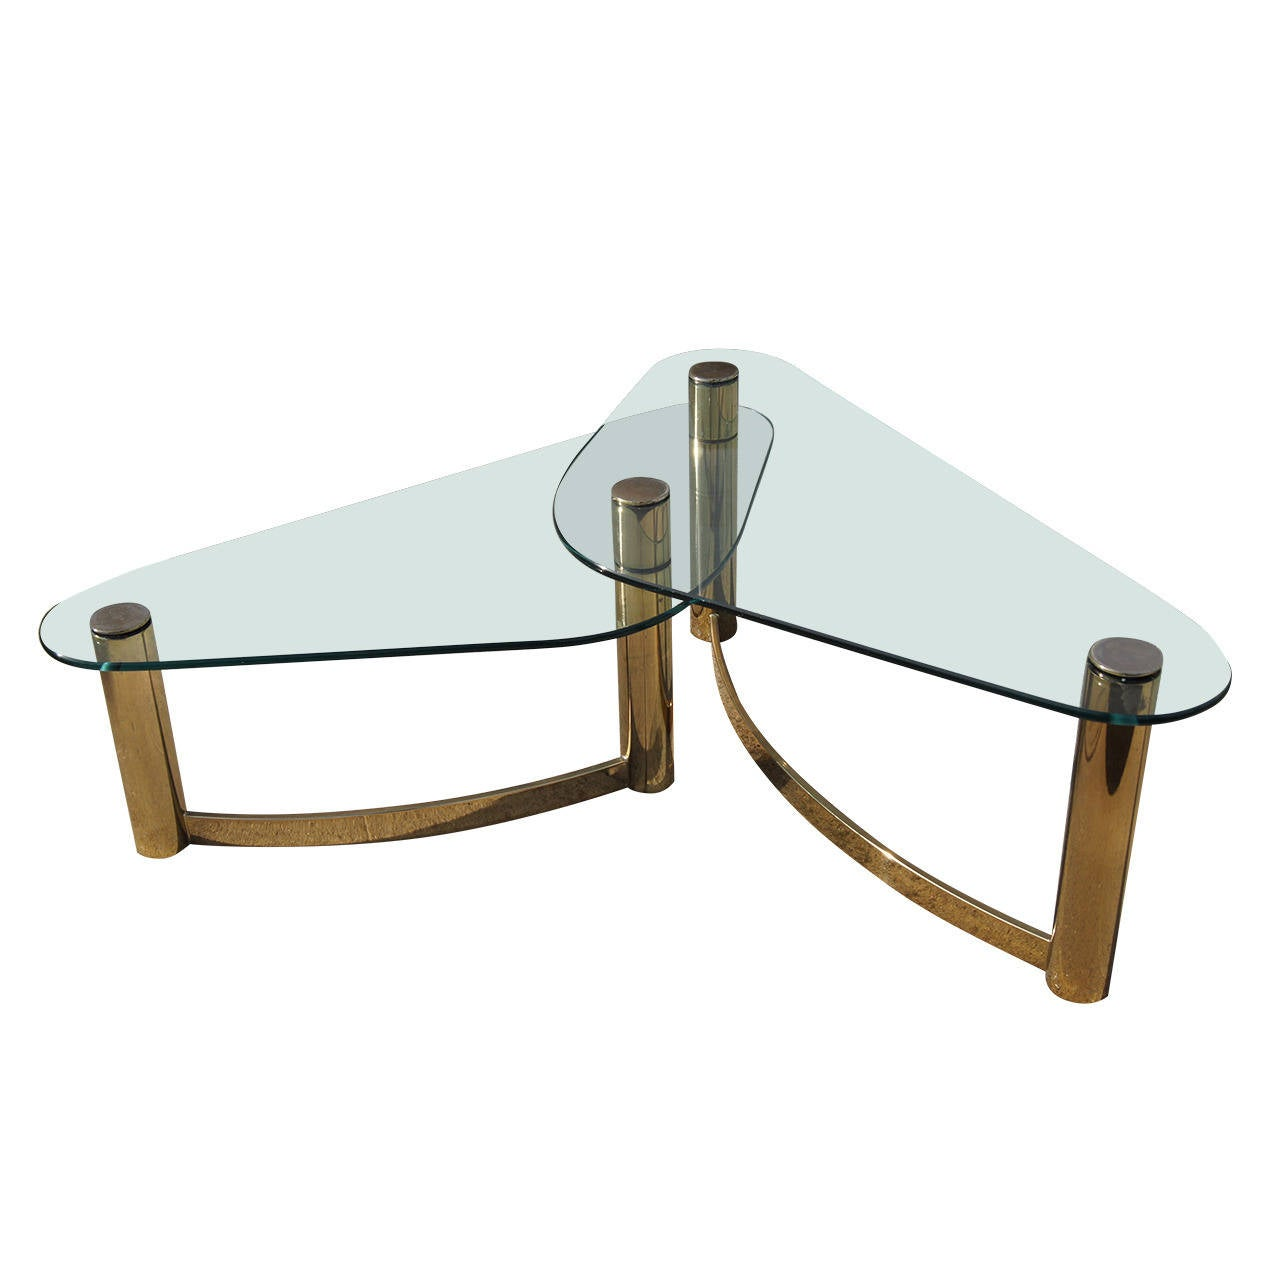 Double brass and glass coffee table by pace collection for sale at 1stdibs Collectors coffee table